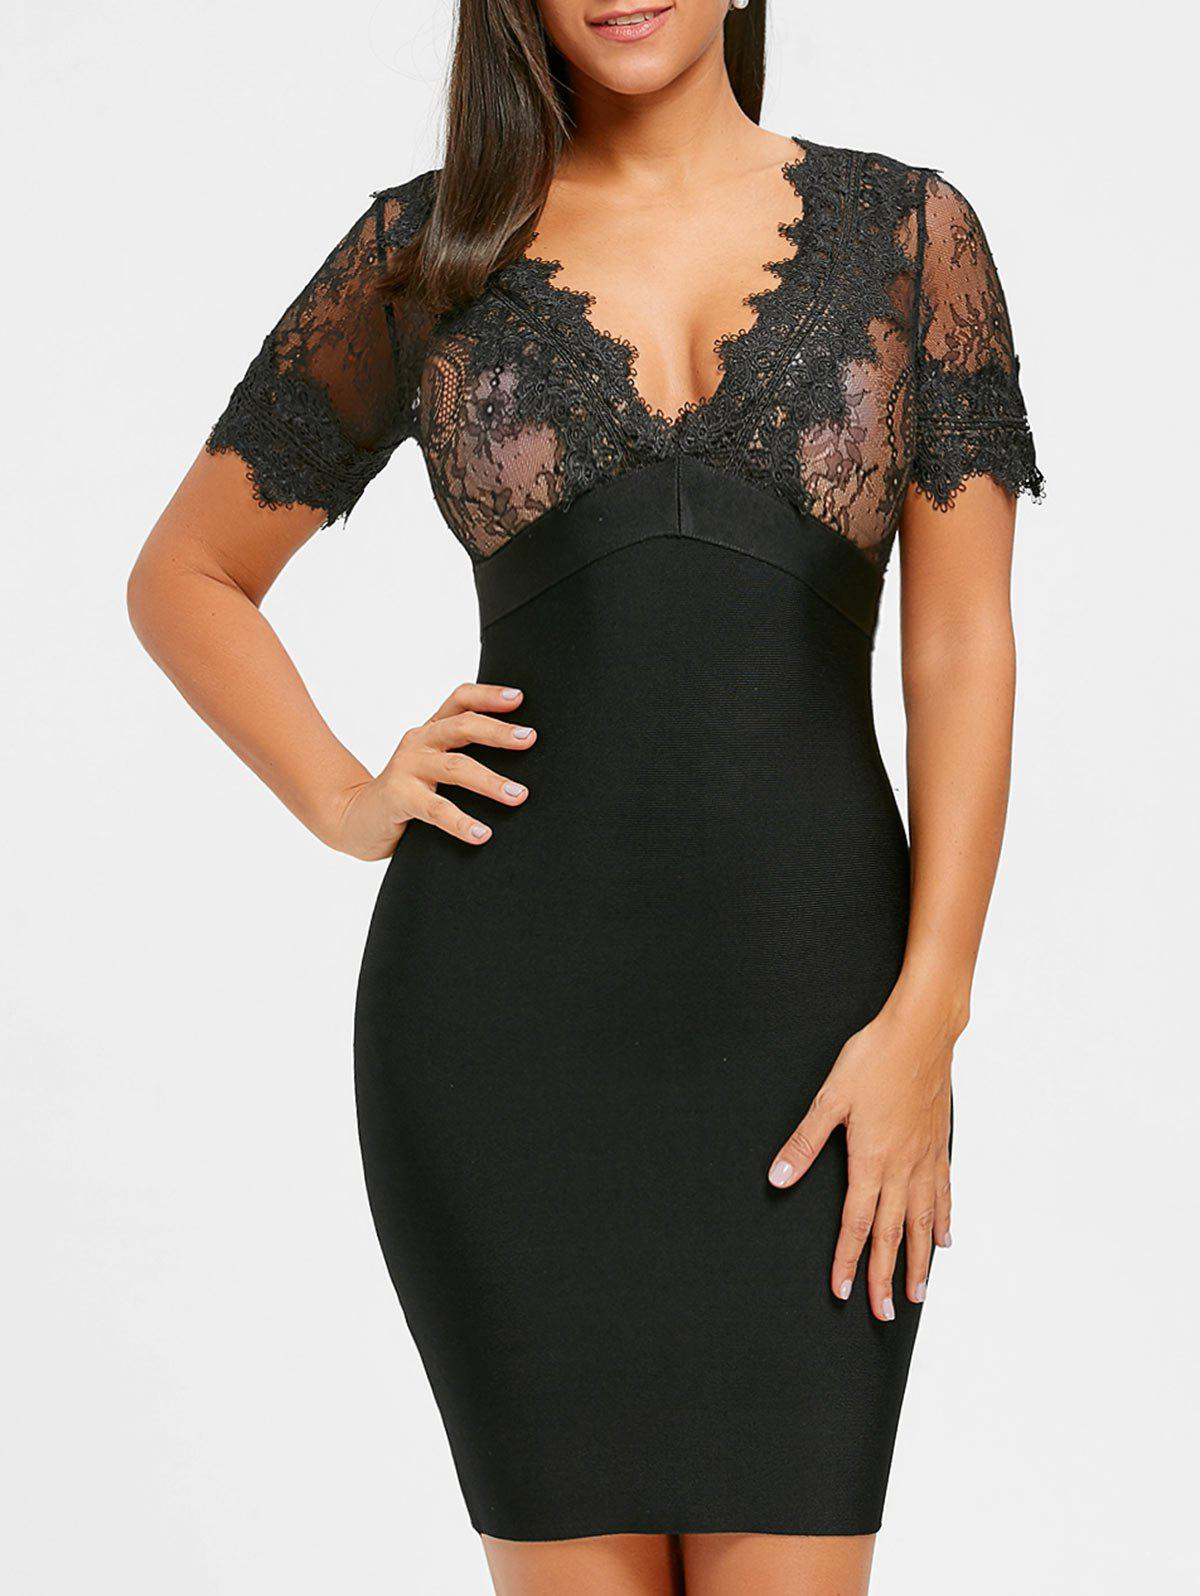 Lace Panel Plunging Neck Bandage Dress - BLACK L